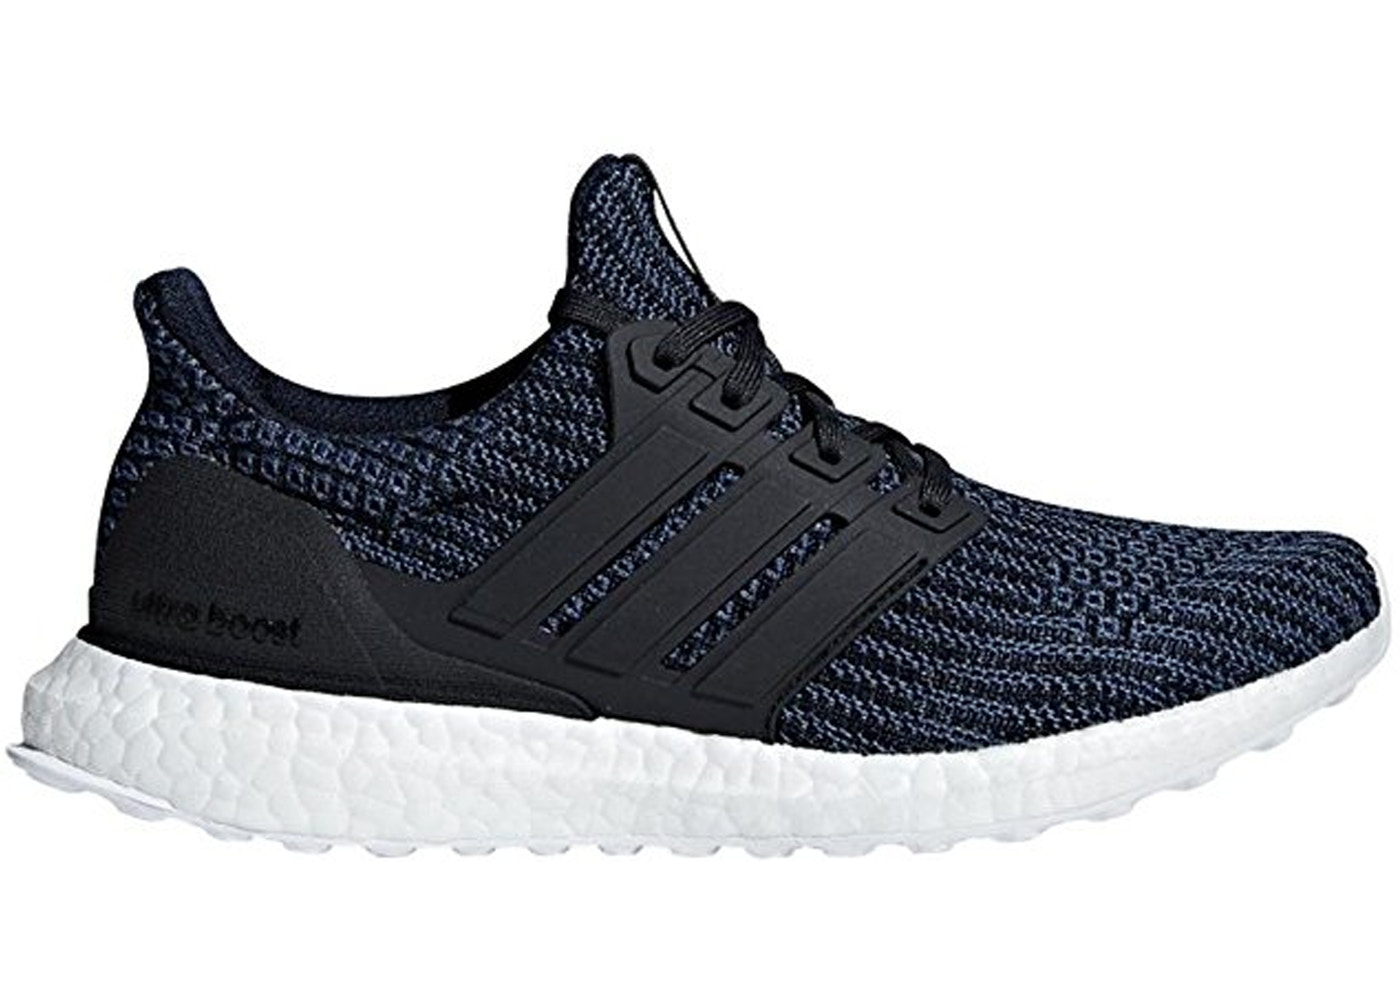 New Men's ADIDAS Ultra Boost 4.0 Running Sneaker CP9250